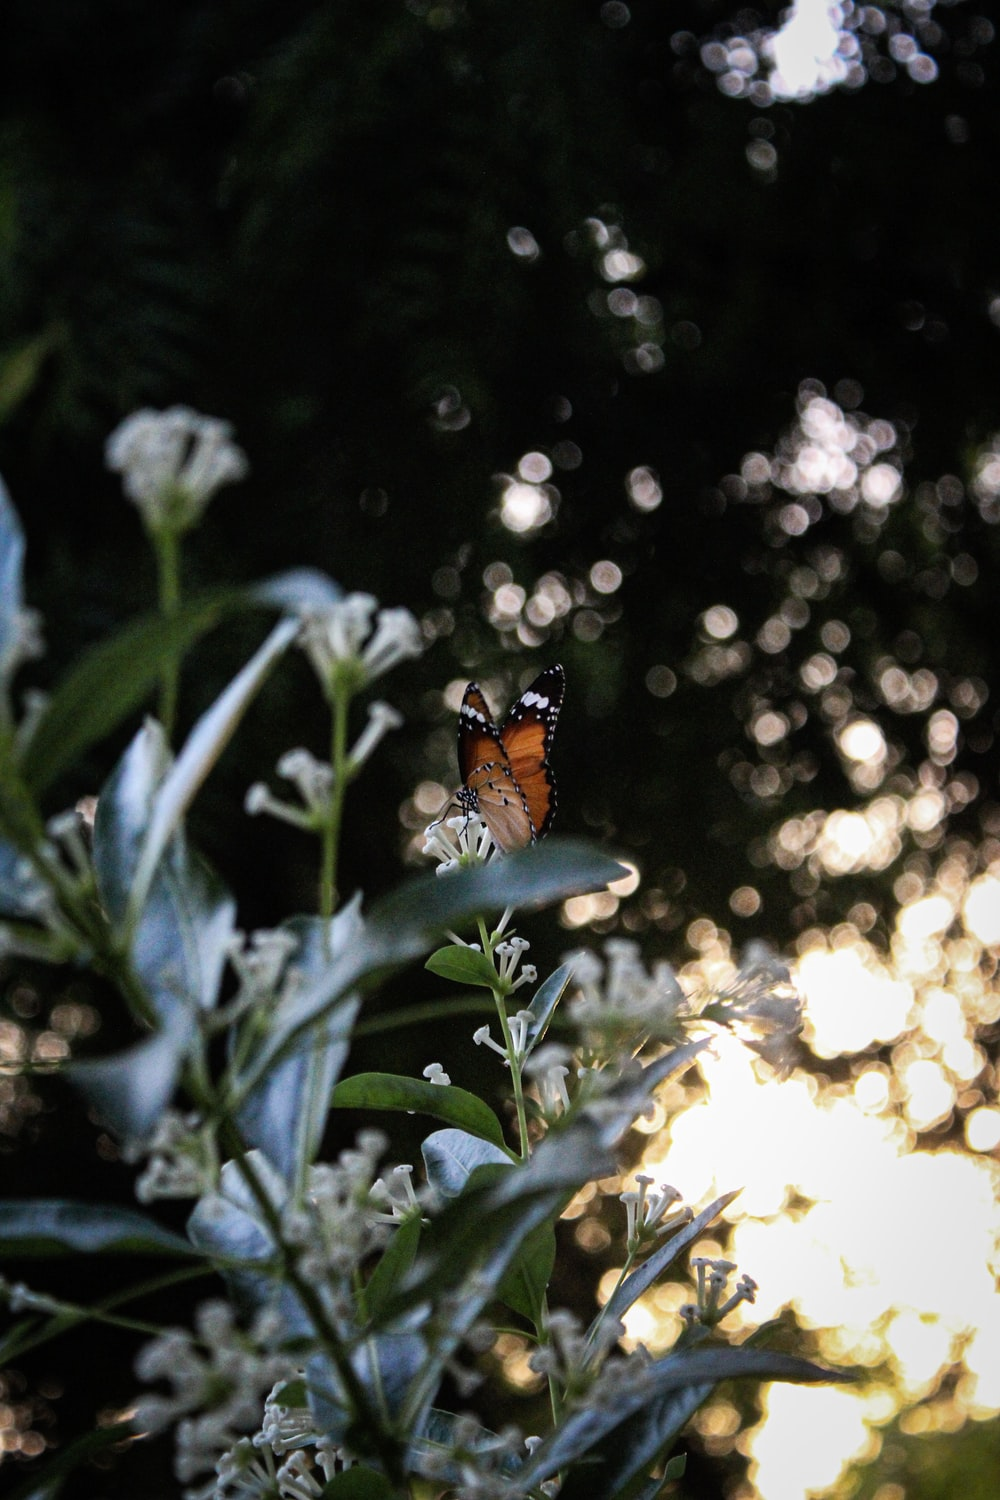 orange and black butterfly perched on green plant during daytime